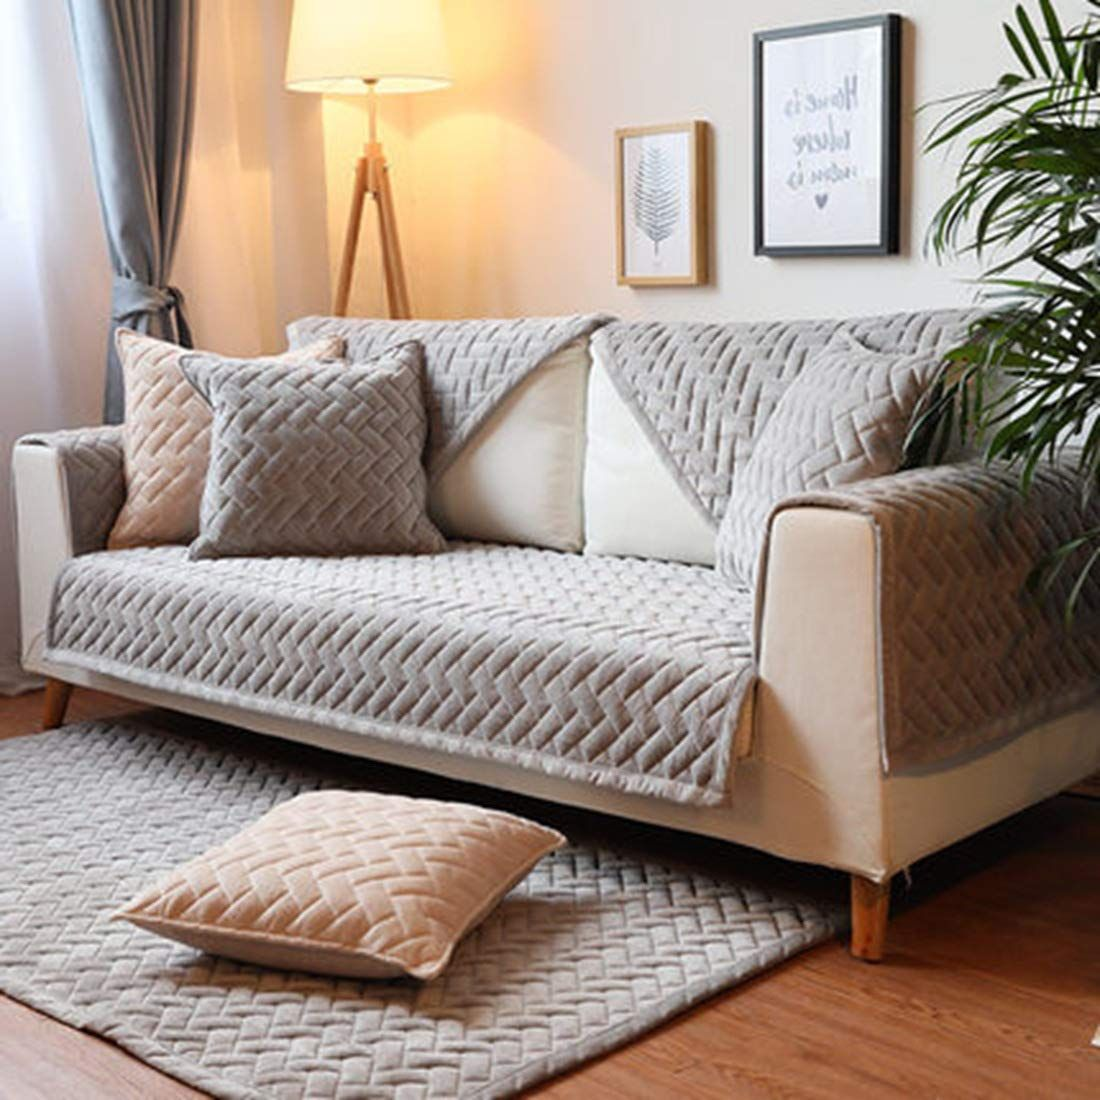 Excellent Royhom Sofa Seat Cover Sofa Protector Keeps Furniture Safe Bralicious Painted Fabric Chair Ideas Braliciousco